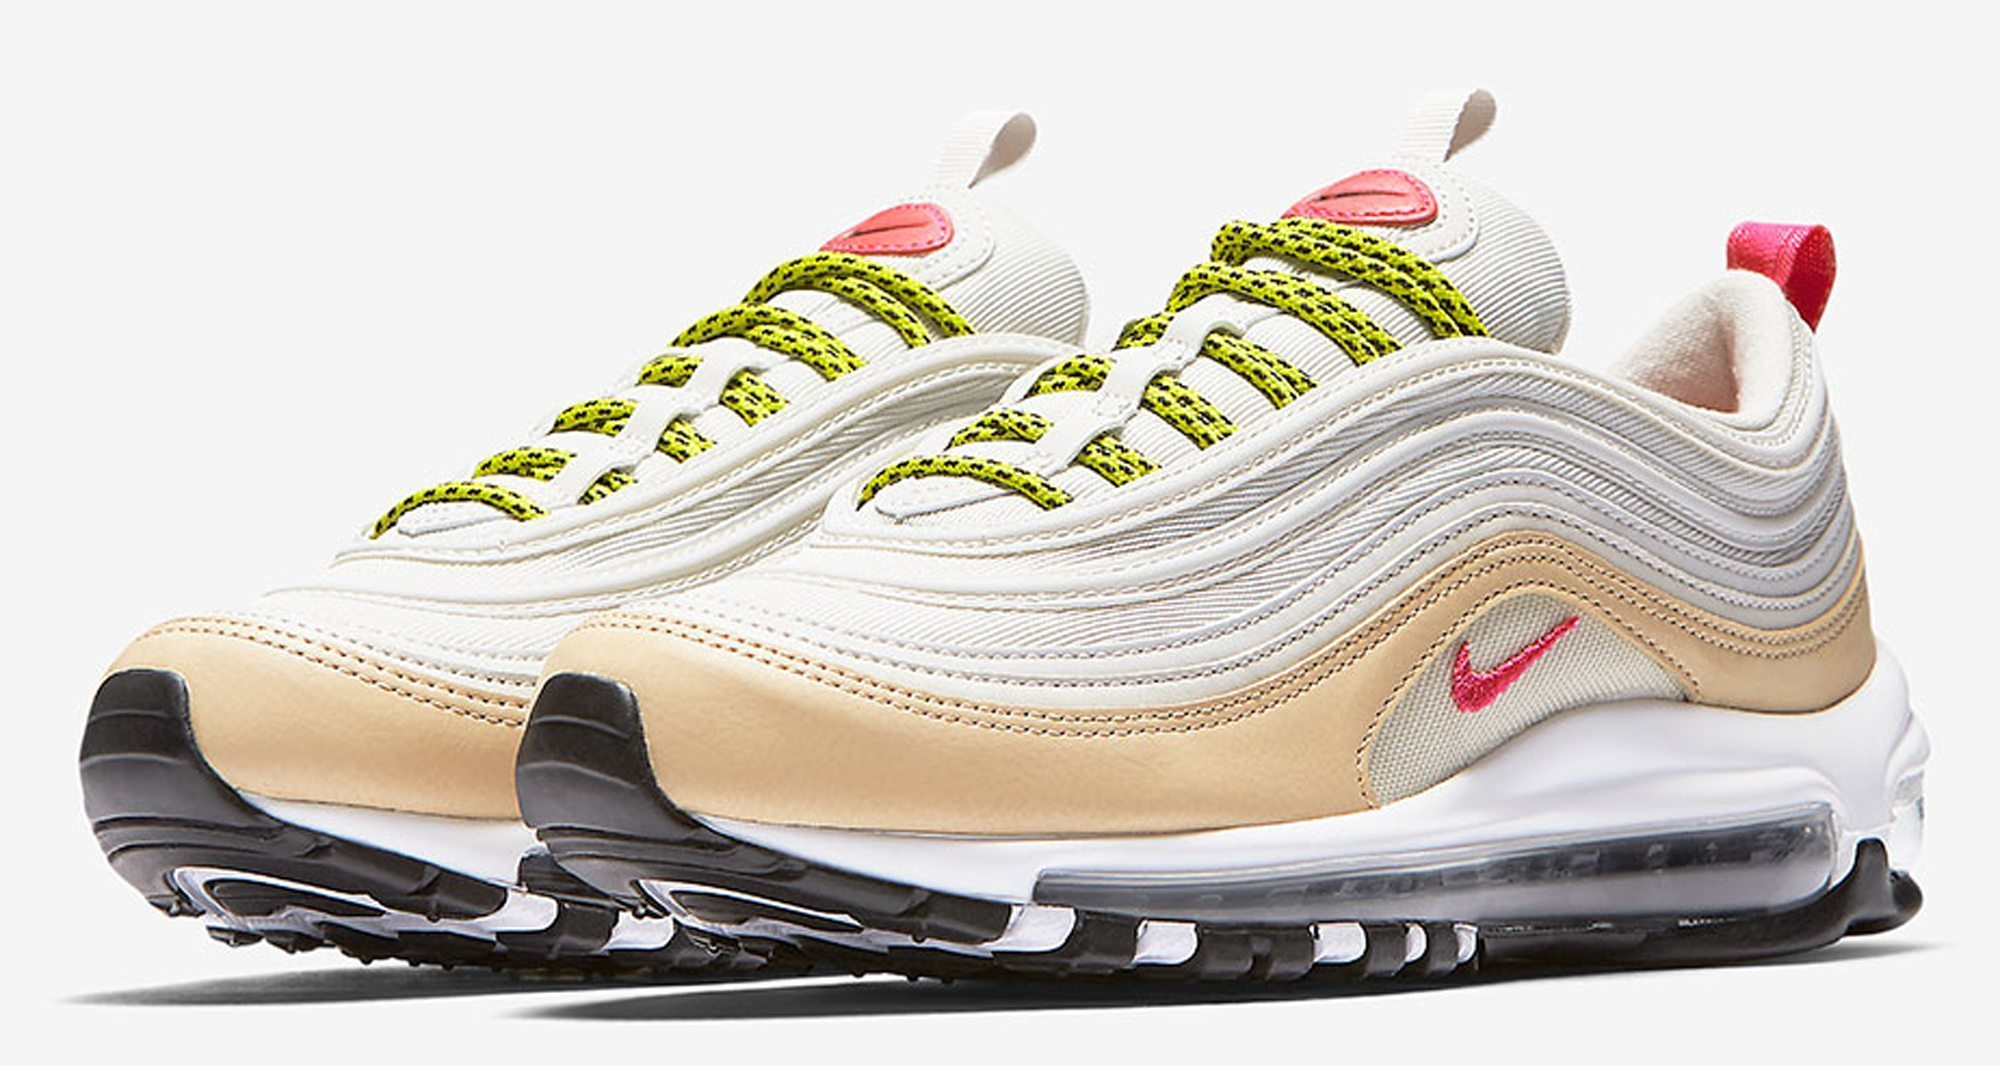 ... nike air max 97 white tan pink coming soon